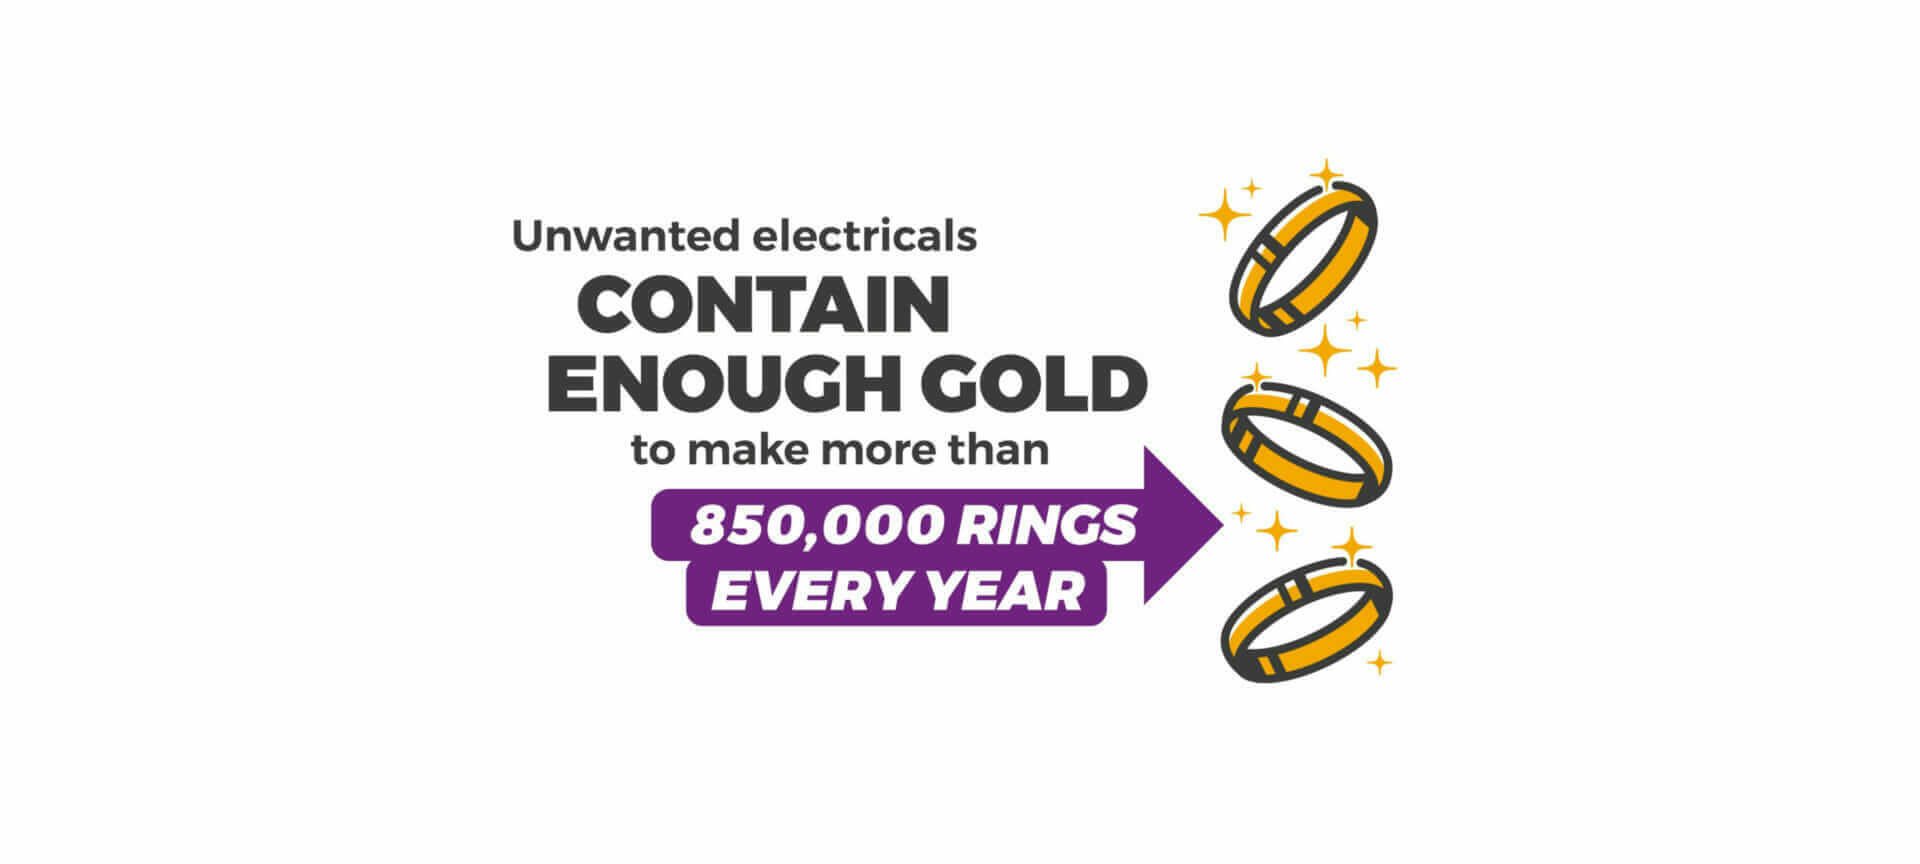 infographic showing electricals contain enough gold to make 850,000 rings a year